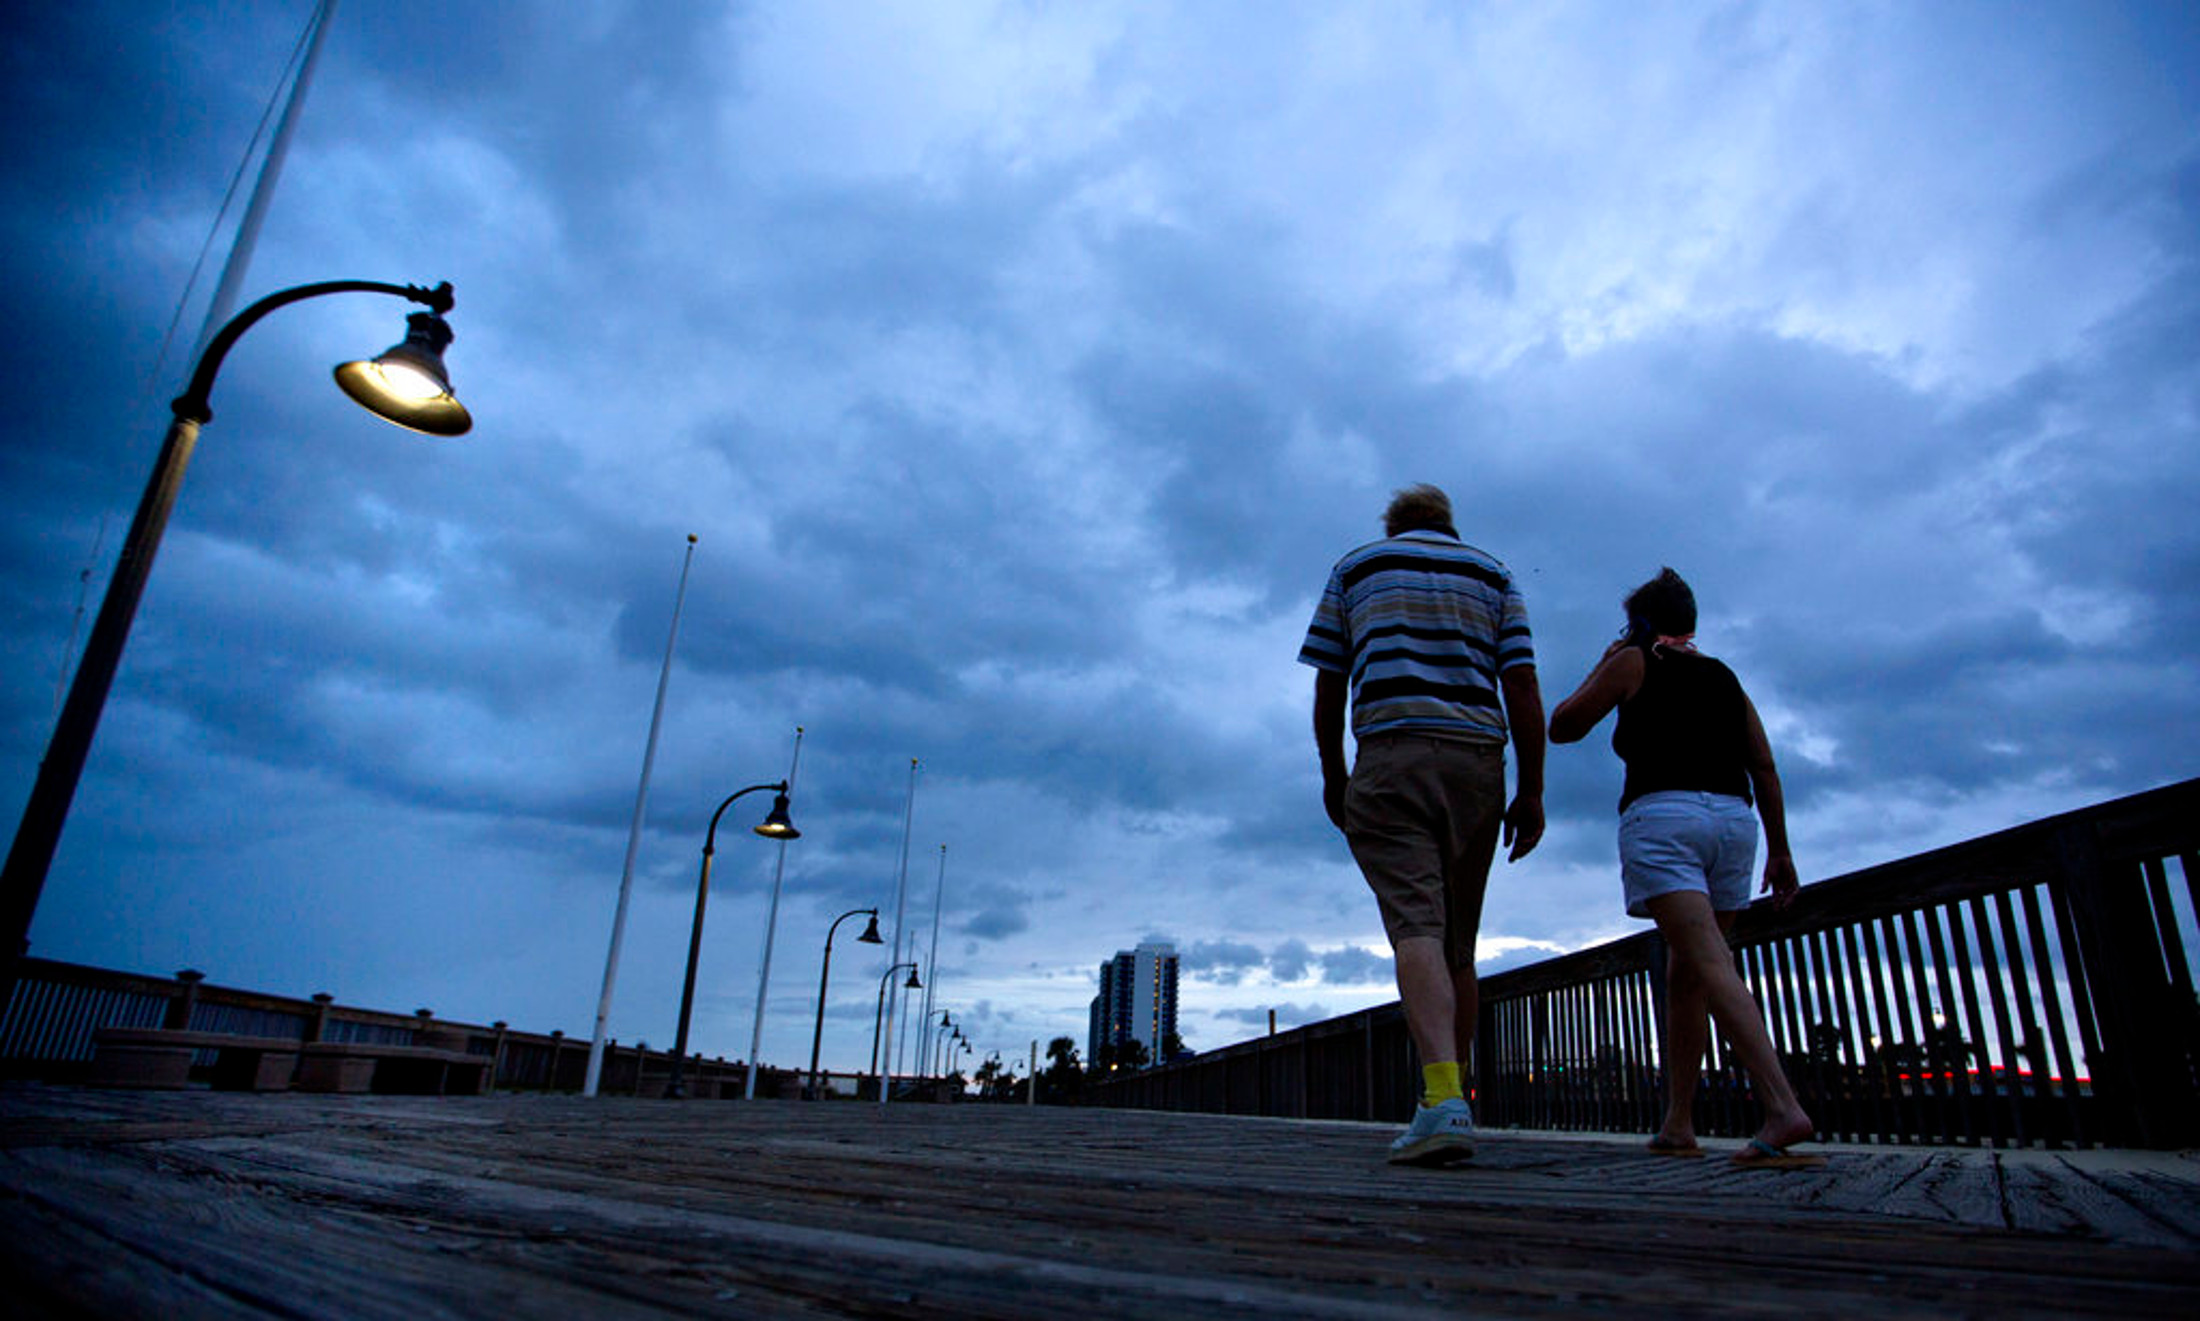 A couple walks along the boardwalk as Hurricane Florence approaches Myrtle Beach, S.C., Thursday, Sept. 13, 2018. (AP Photo/David Goldman)